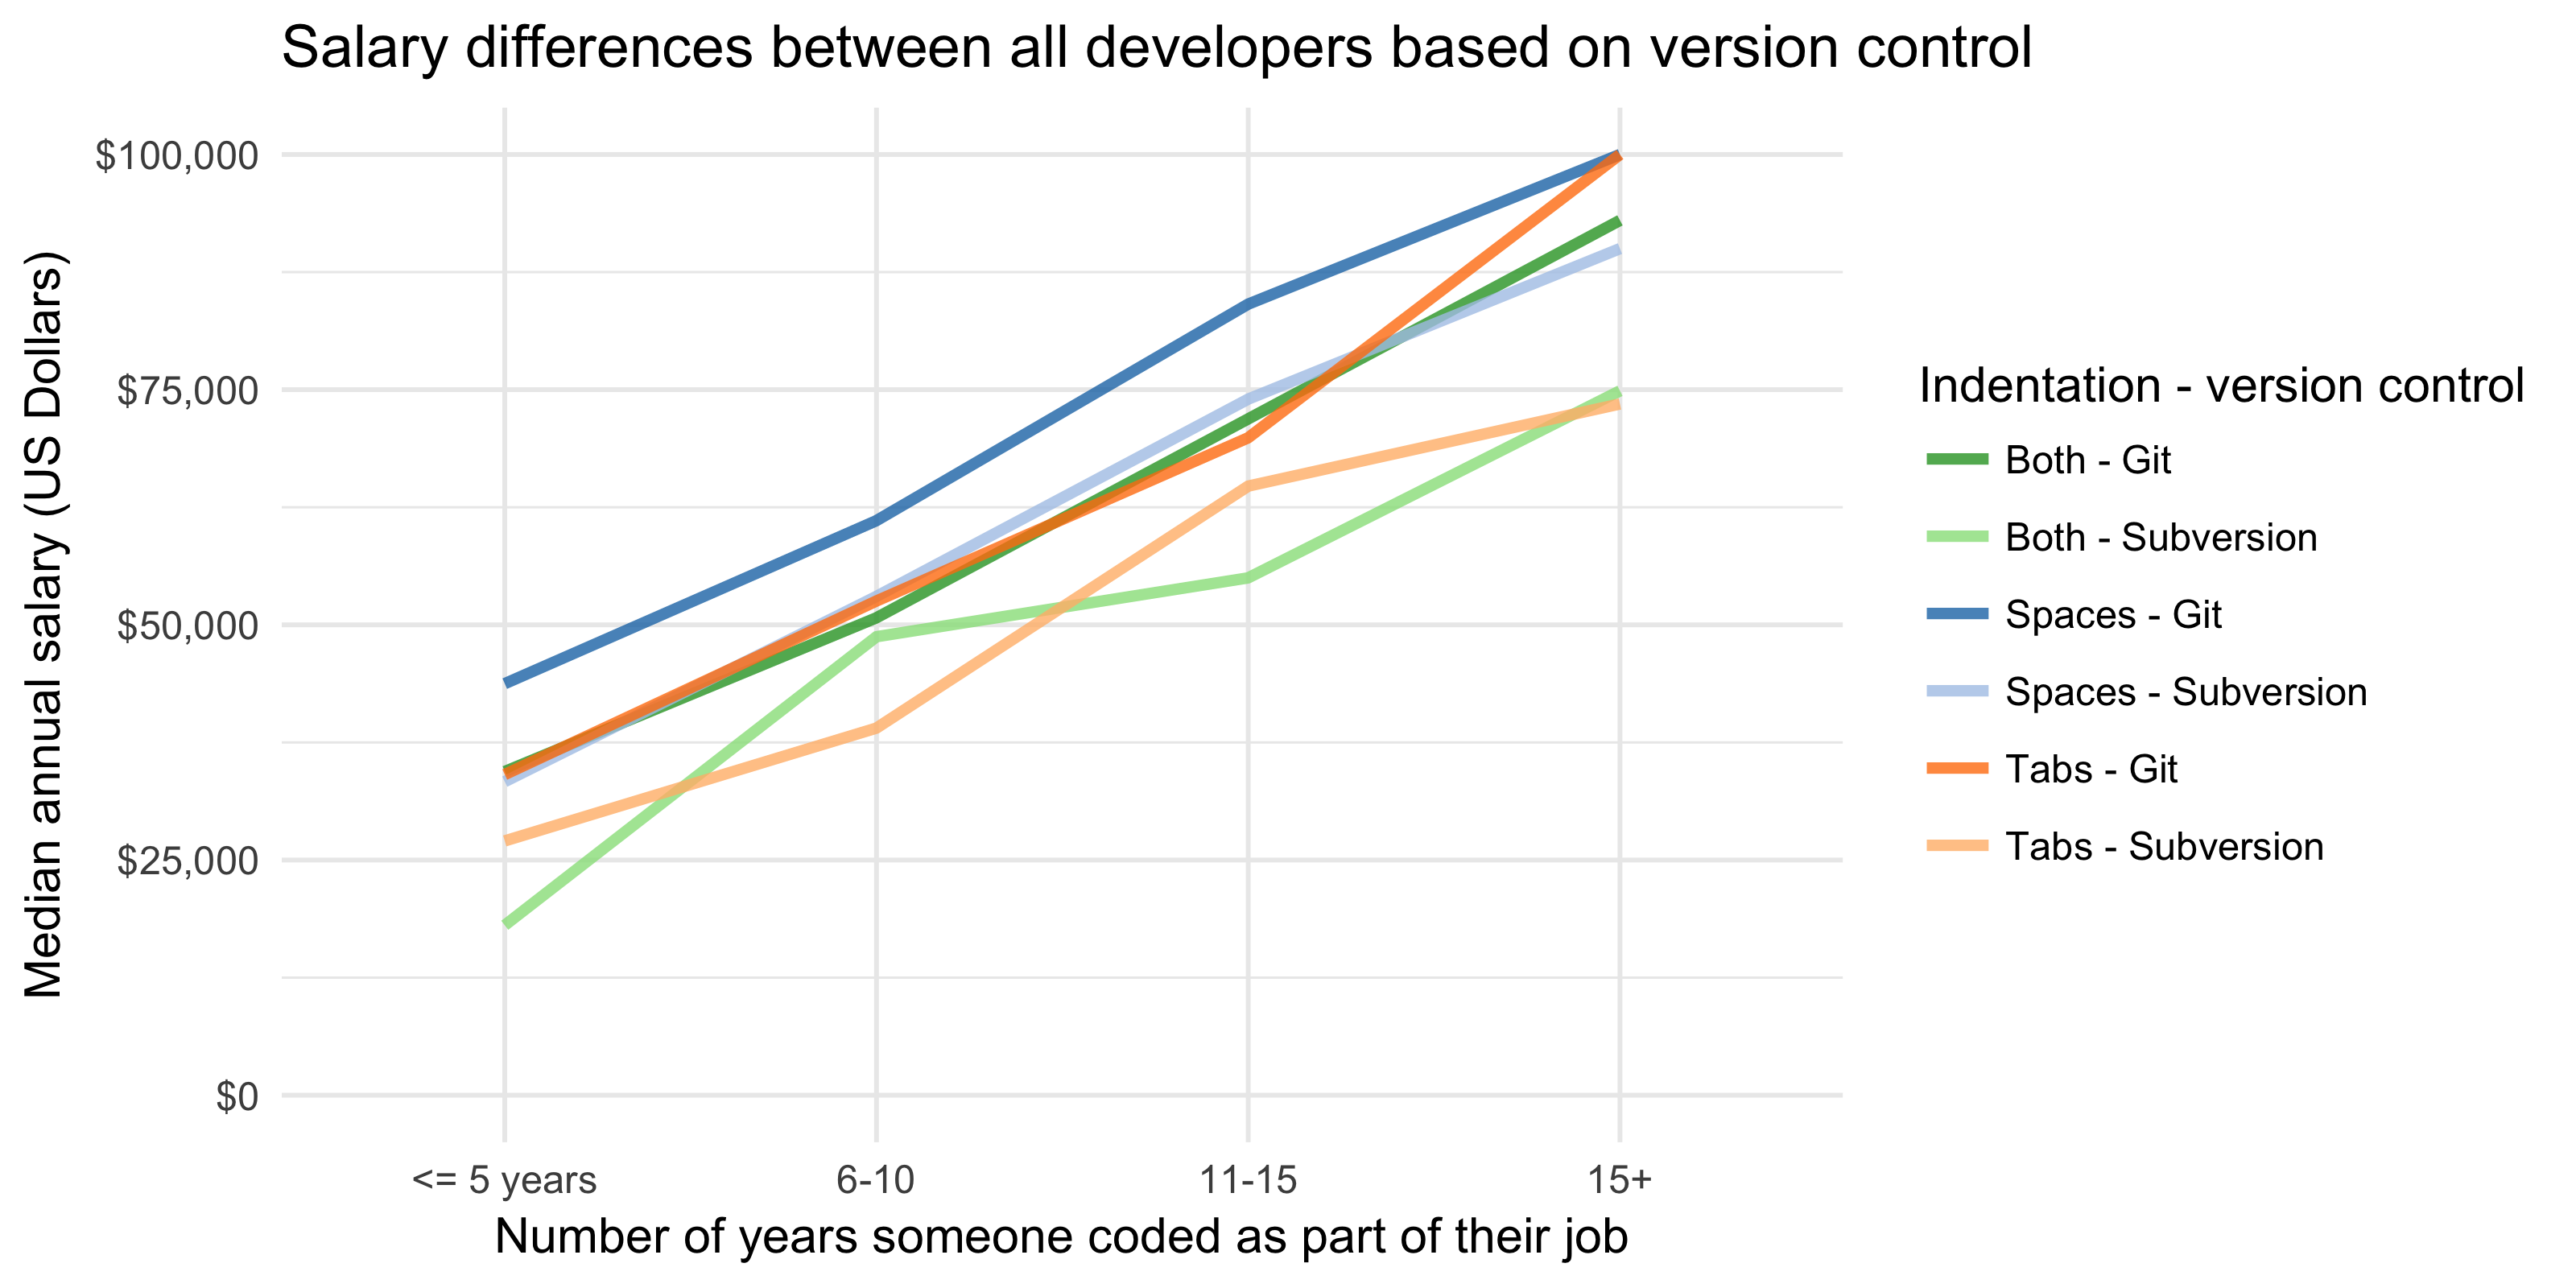 Tabs spaces and your salary how is it really git tab users have very similar salaries to subversion space users and git both tab and space users hexwebz Choice Image